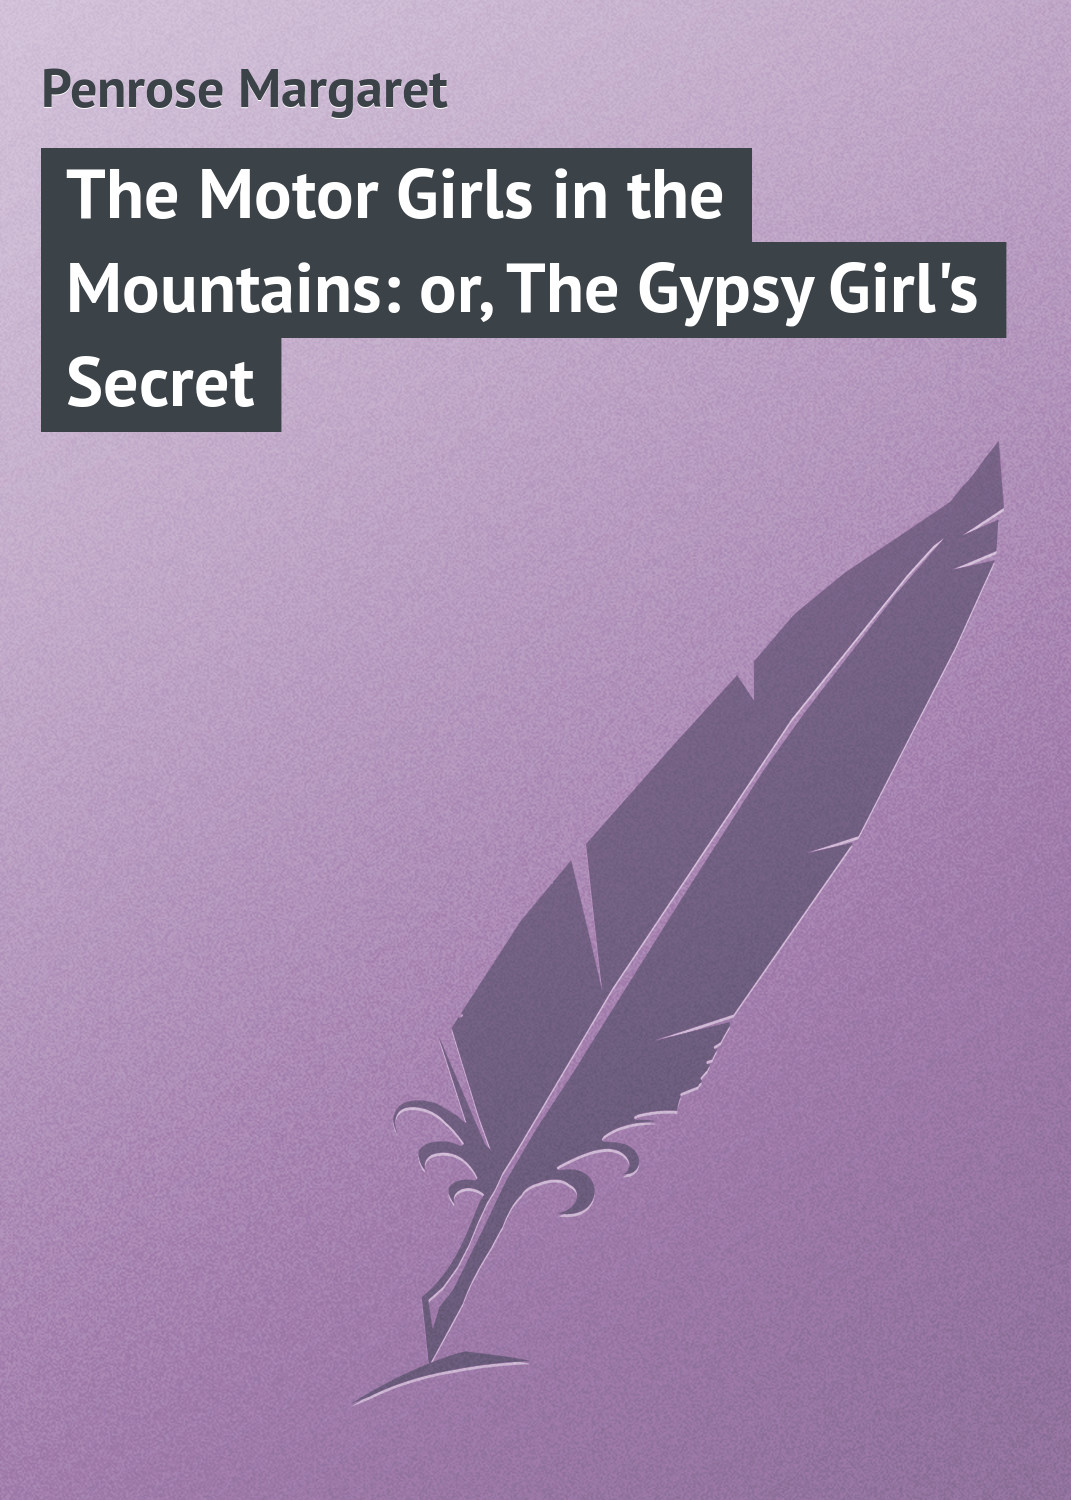 Penrose Margaret The Motor Girls in the Mountains: or, The Gypsy Girl's Secret m j oczko a prayer in the mountains